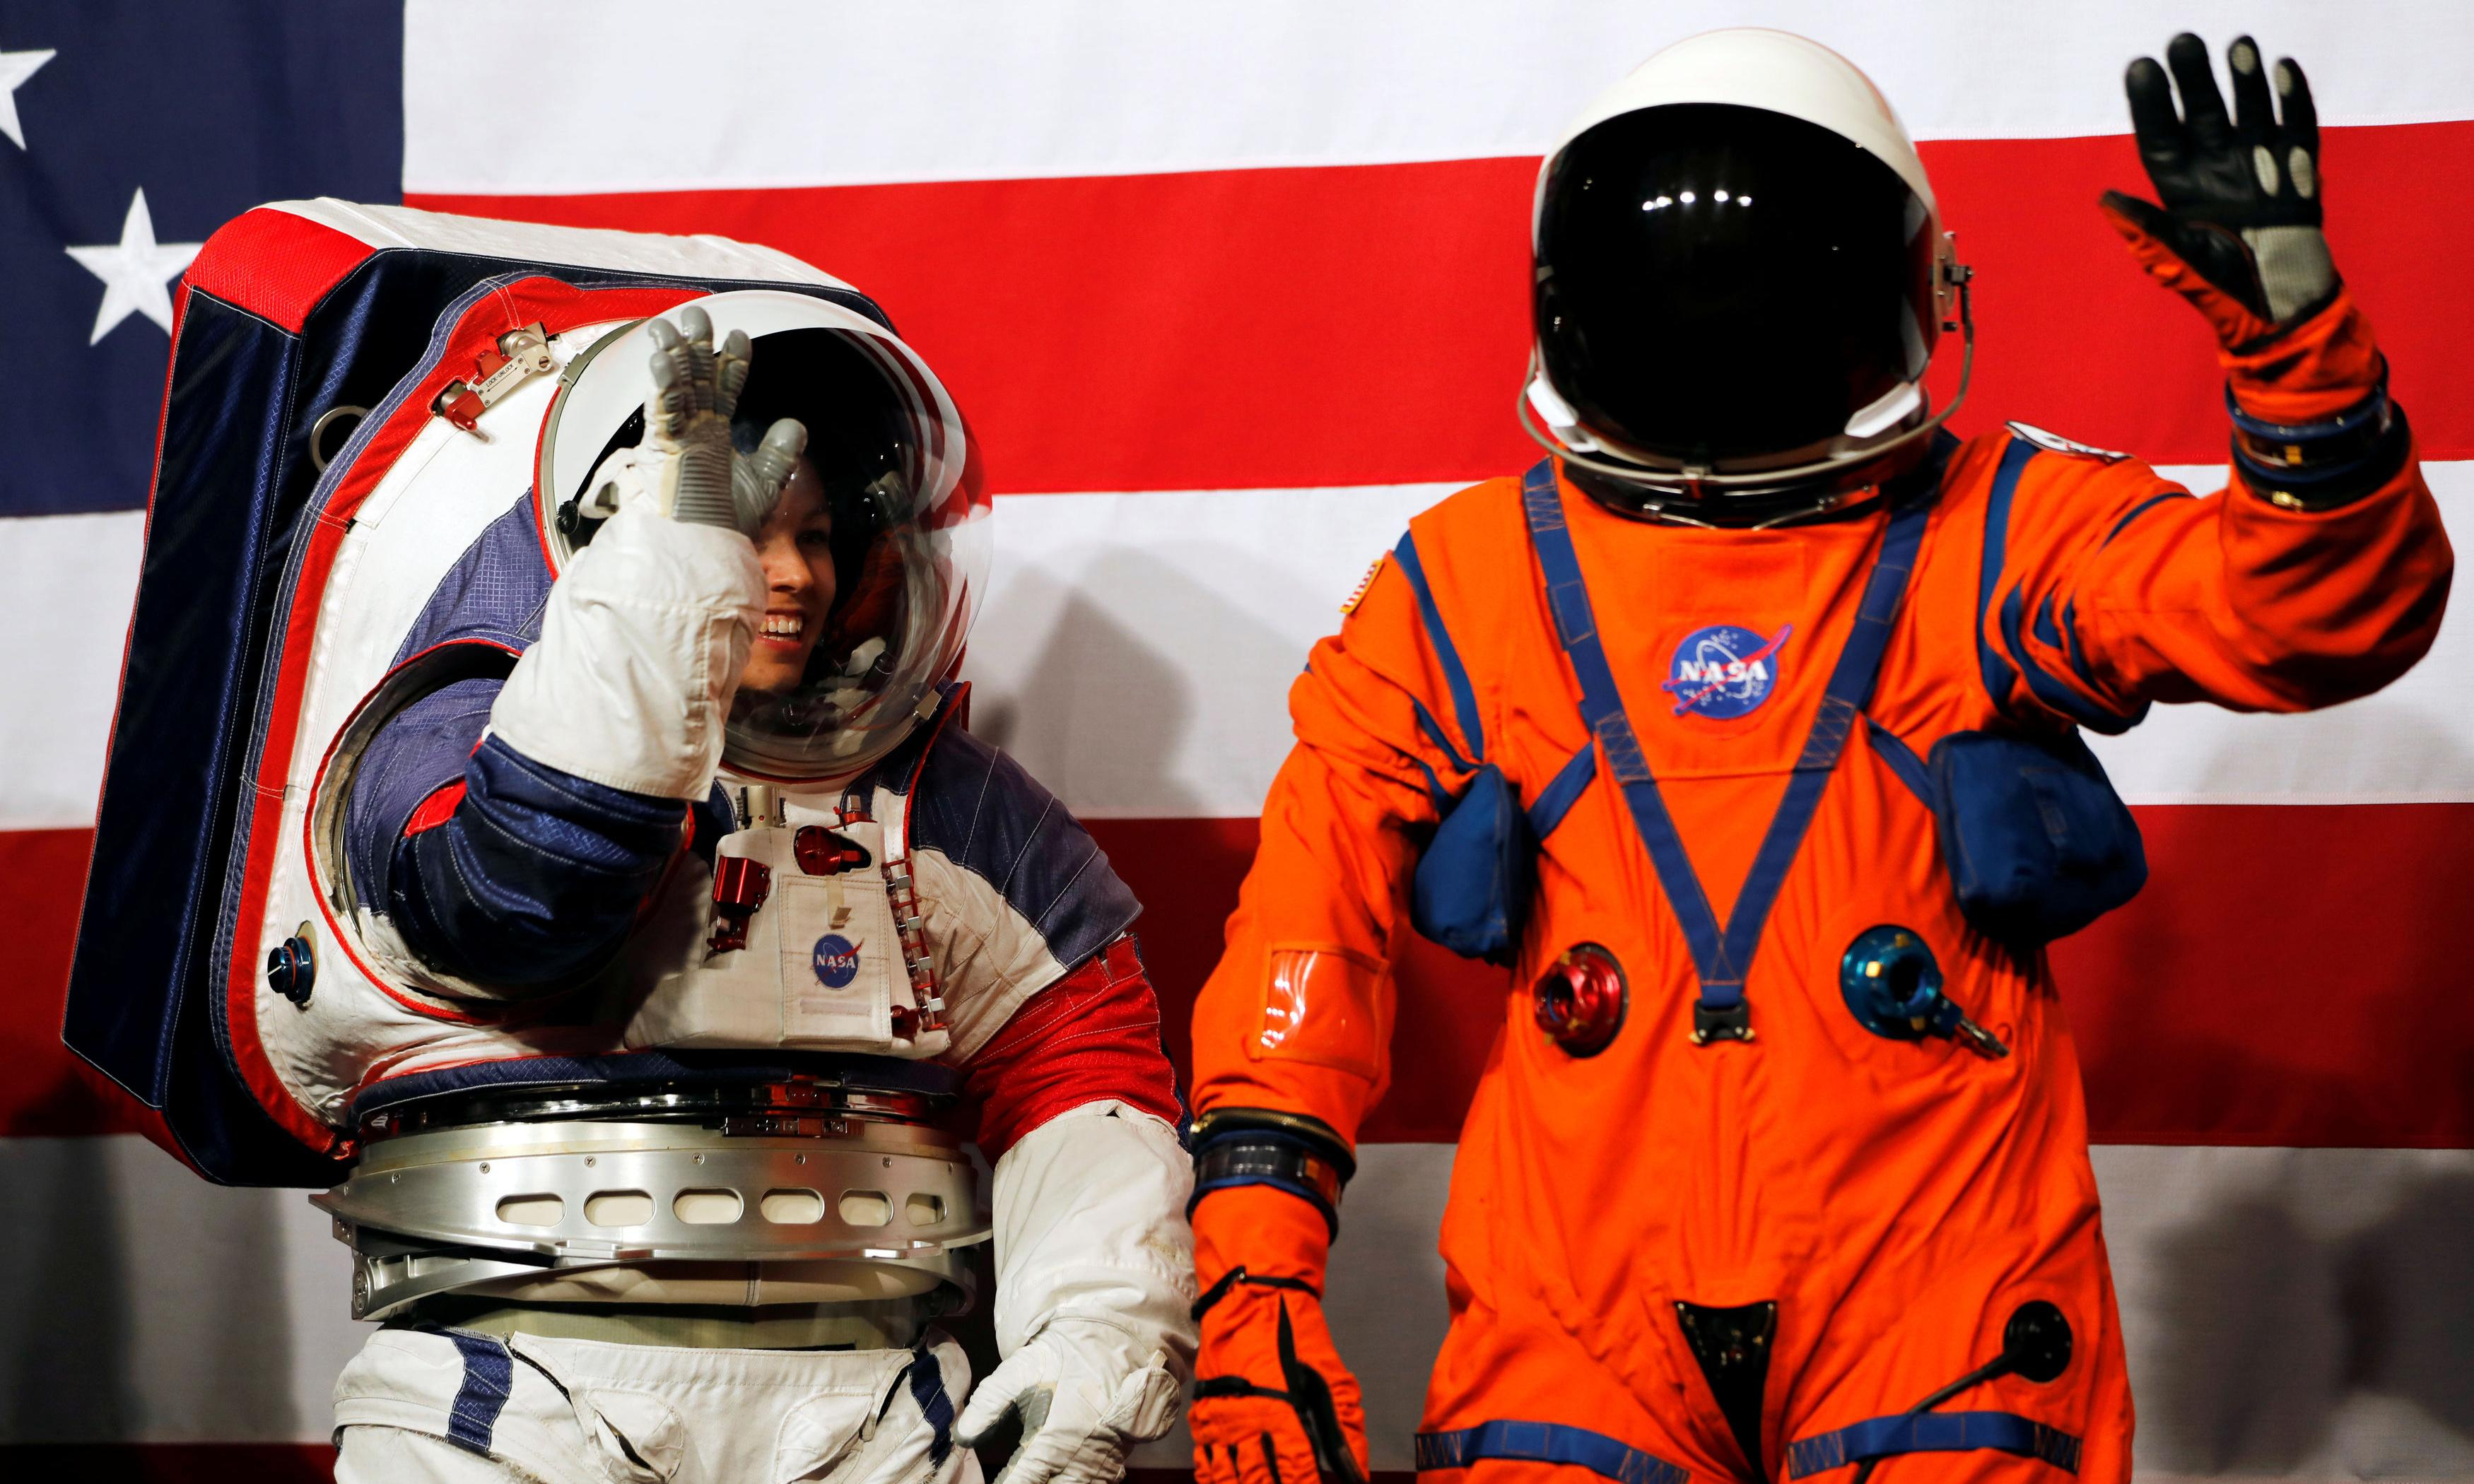 Nasa unveils spacesuits to be worn by first woman on the moon